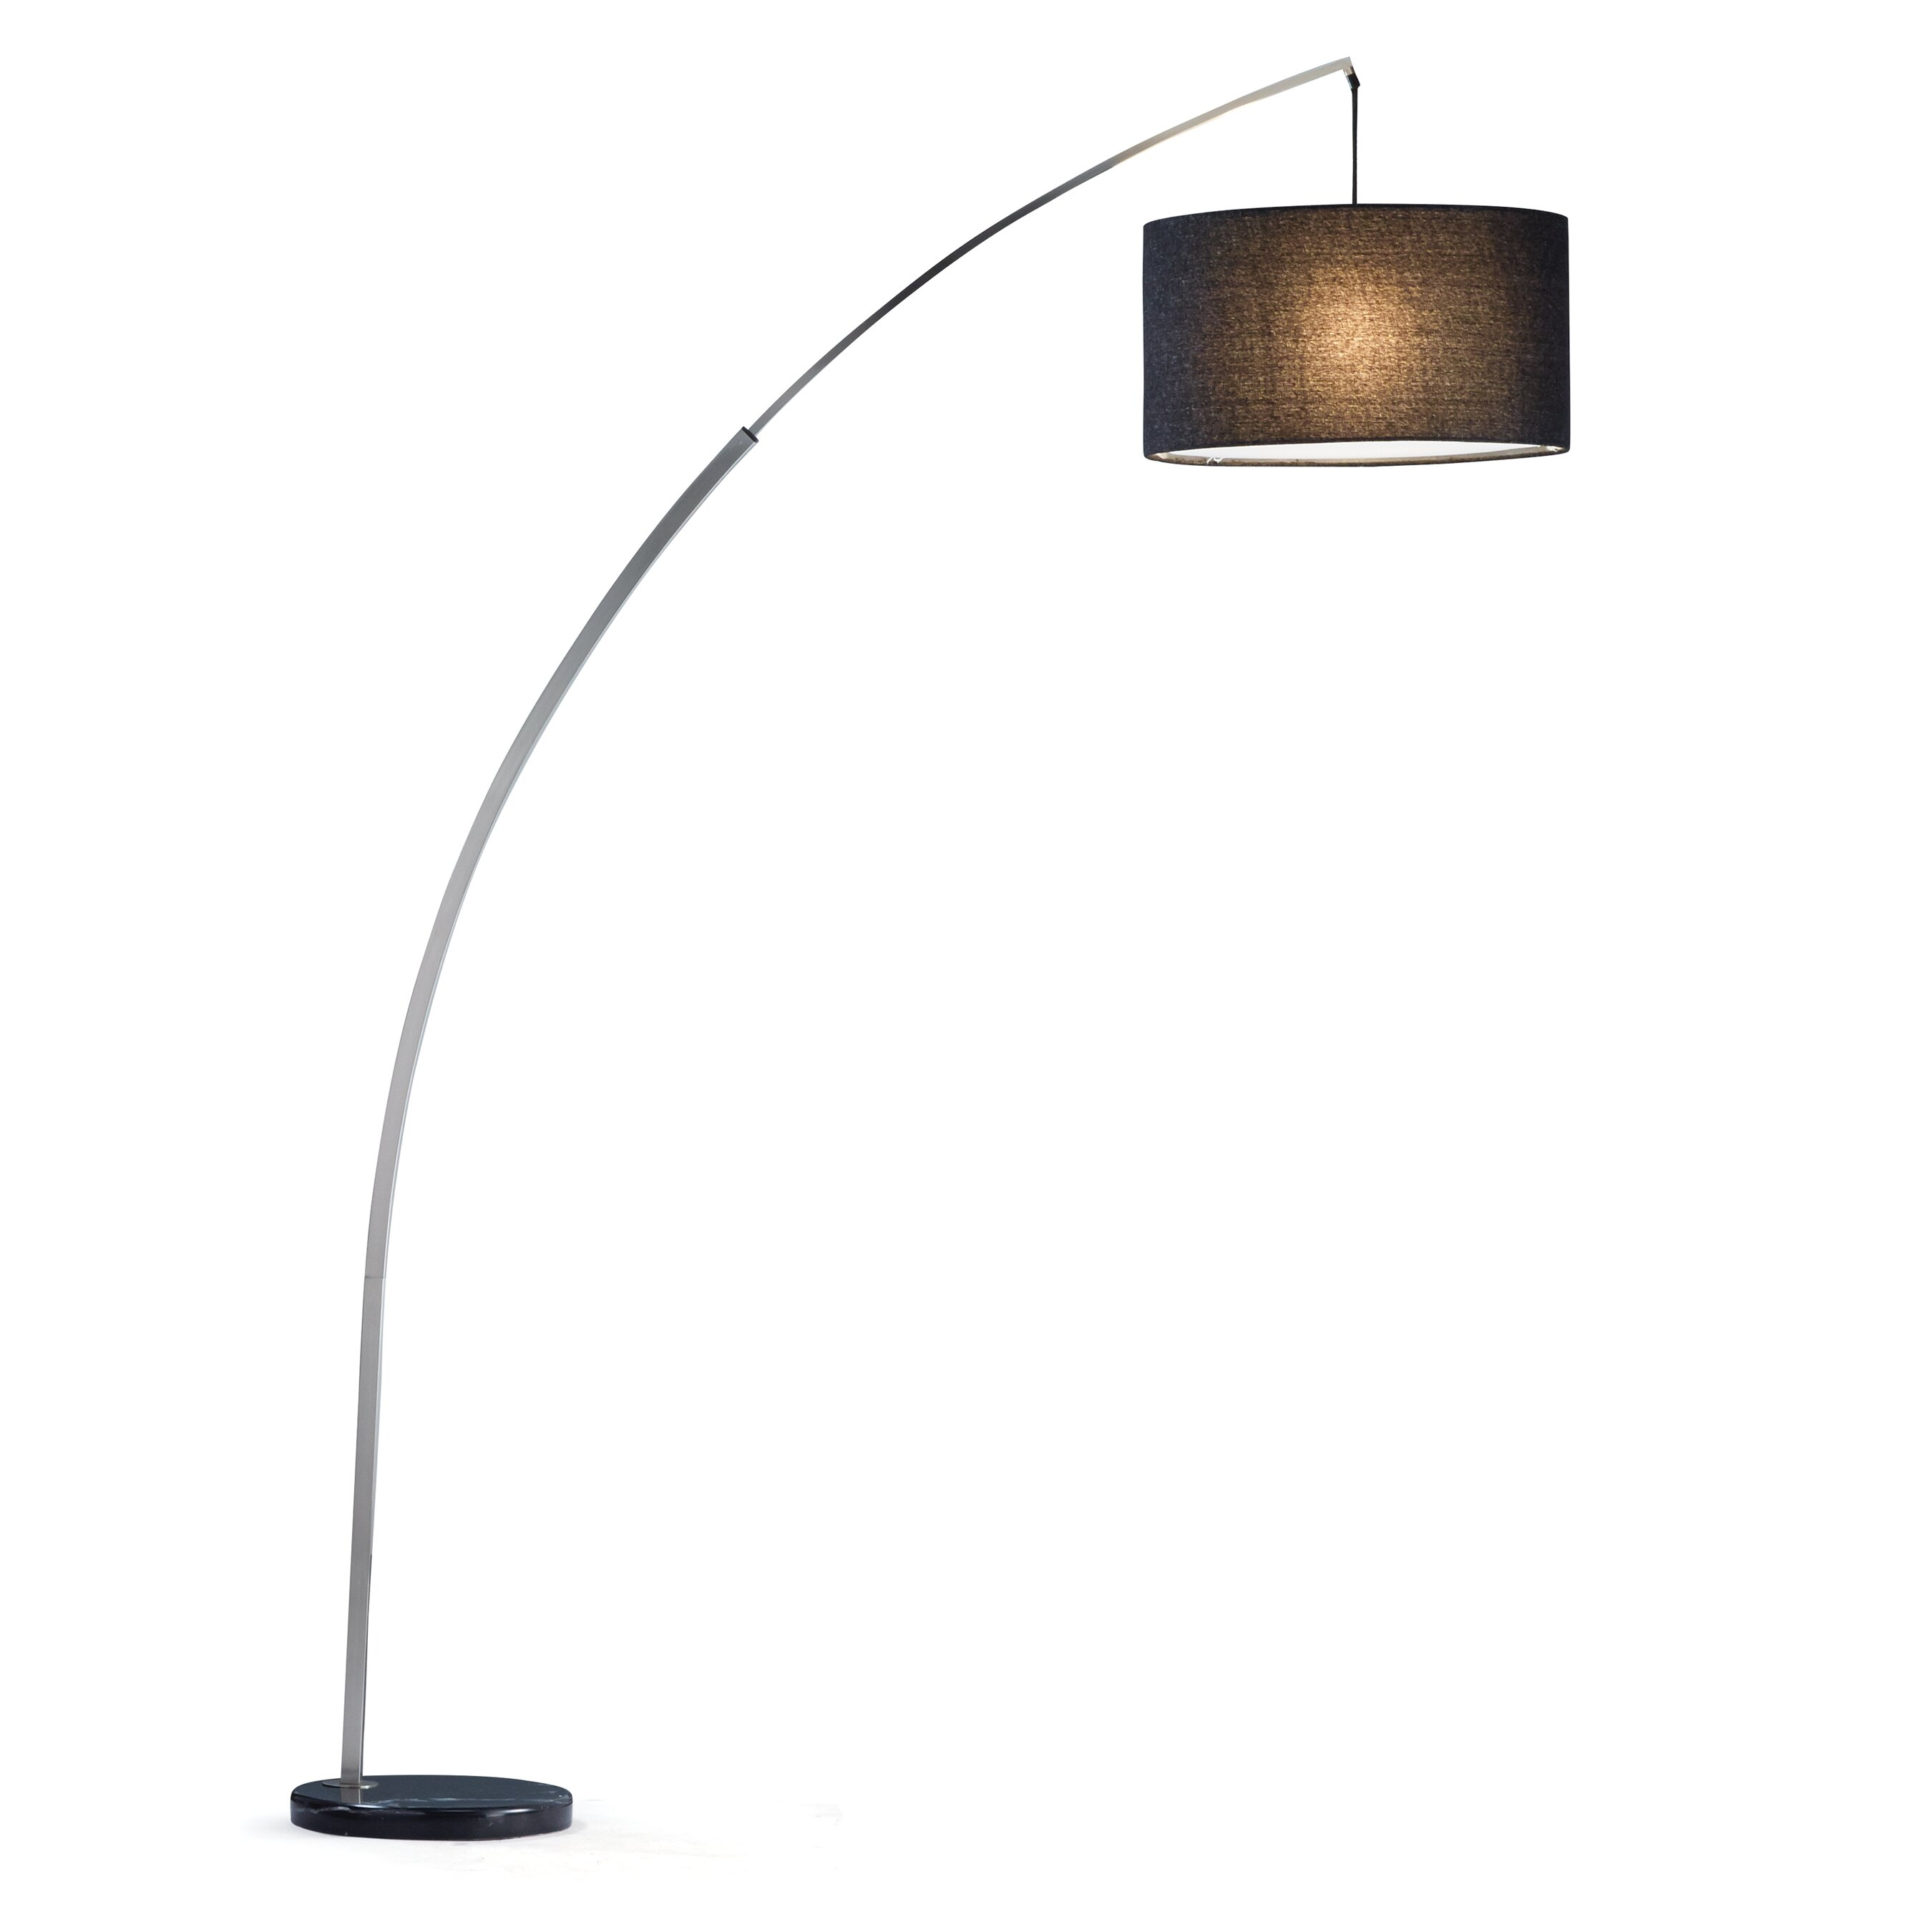 Adesso rivington 86 arched floor lamp reviews wayfair for Arch floor lamps for living room